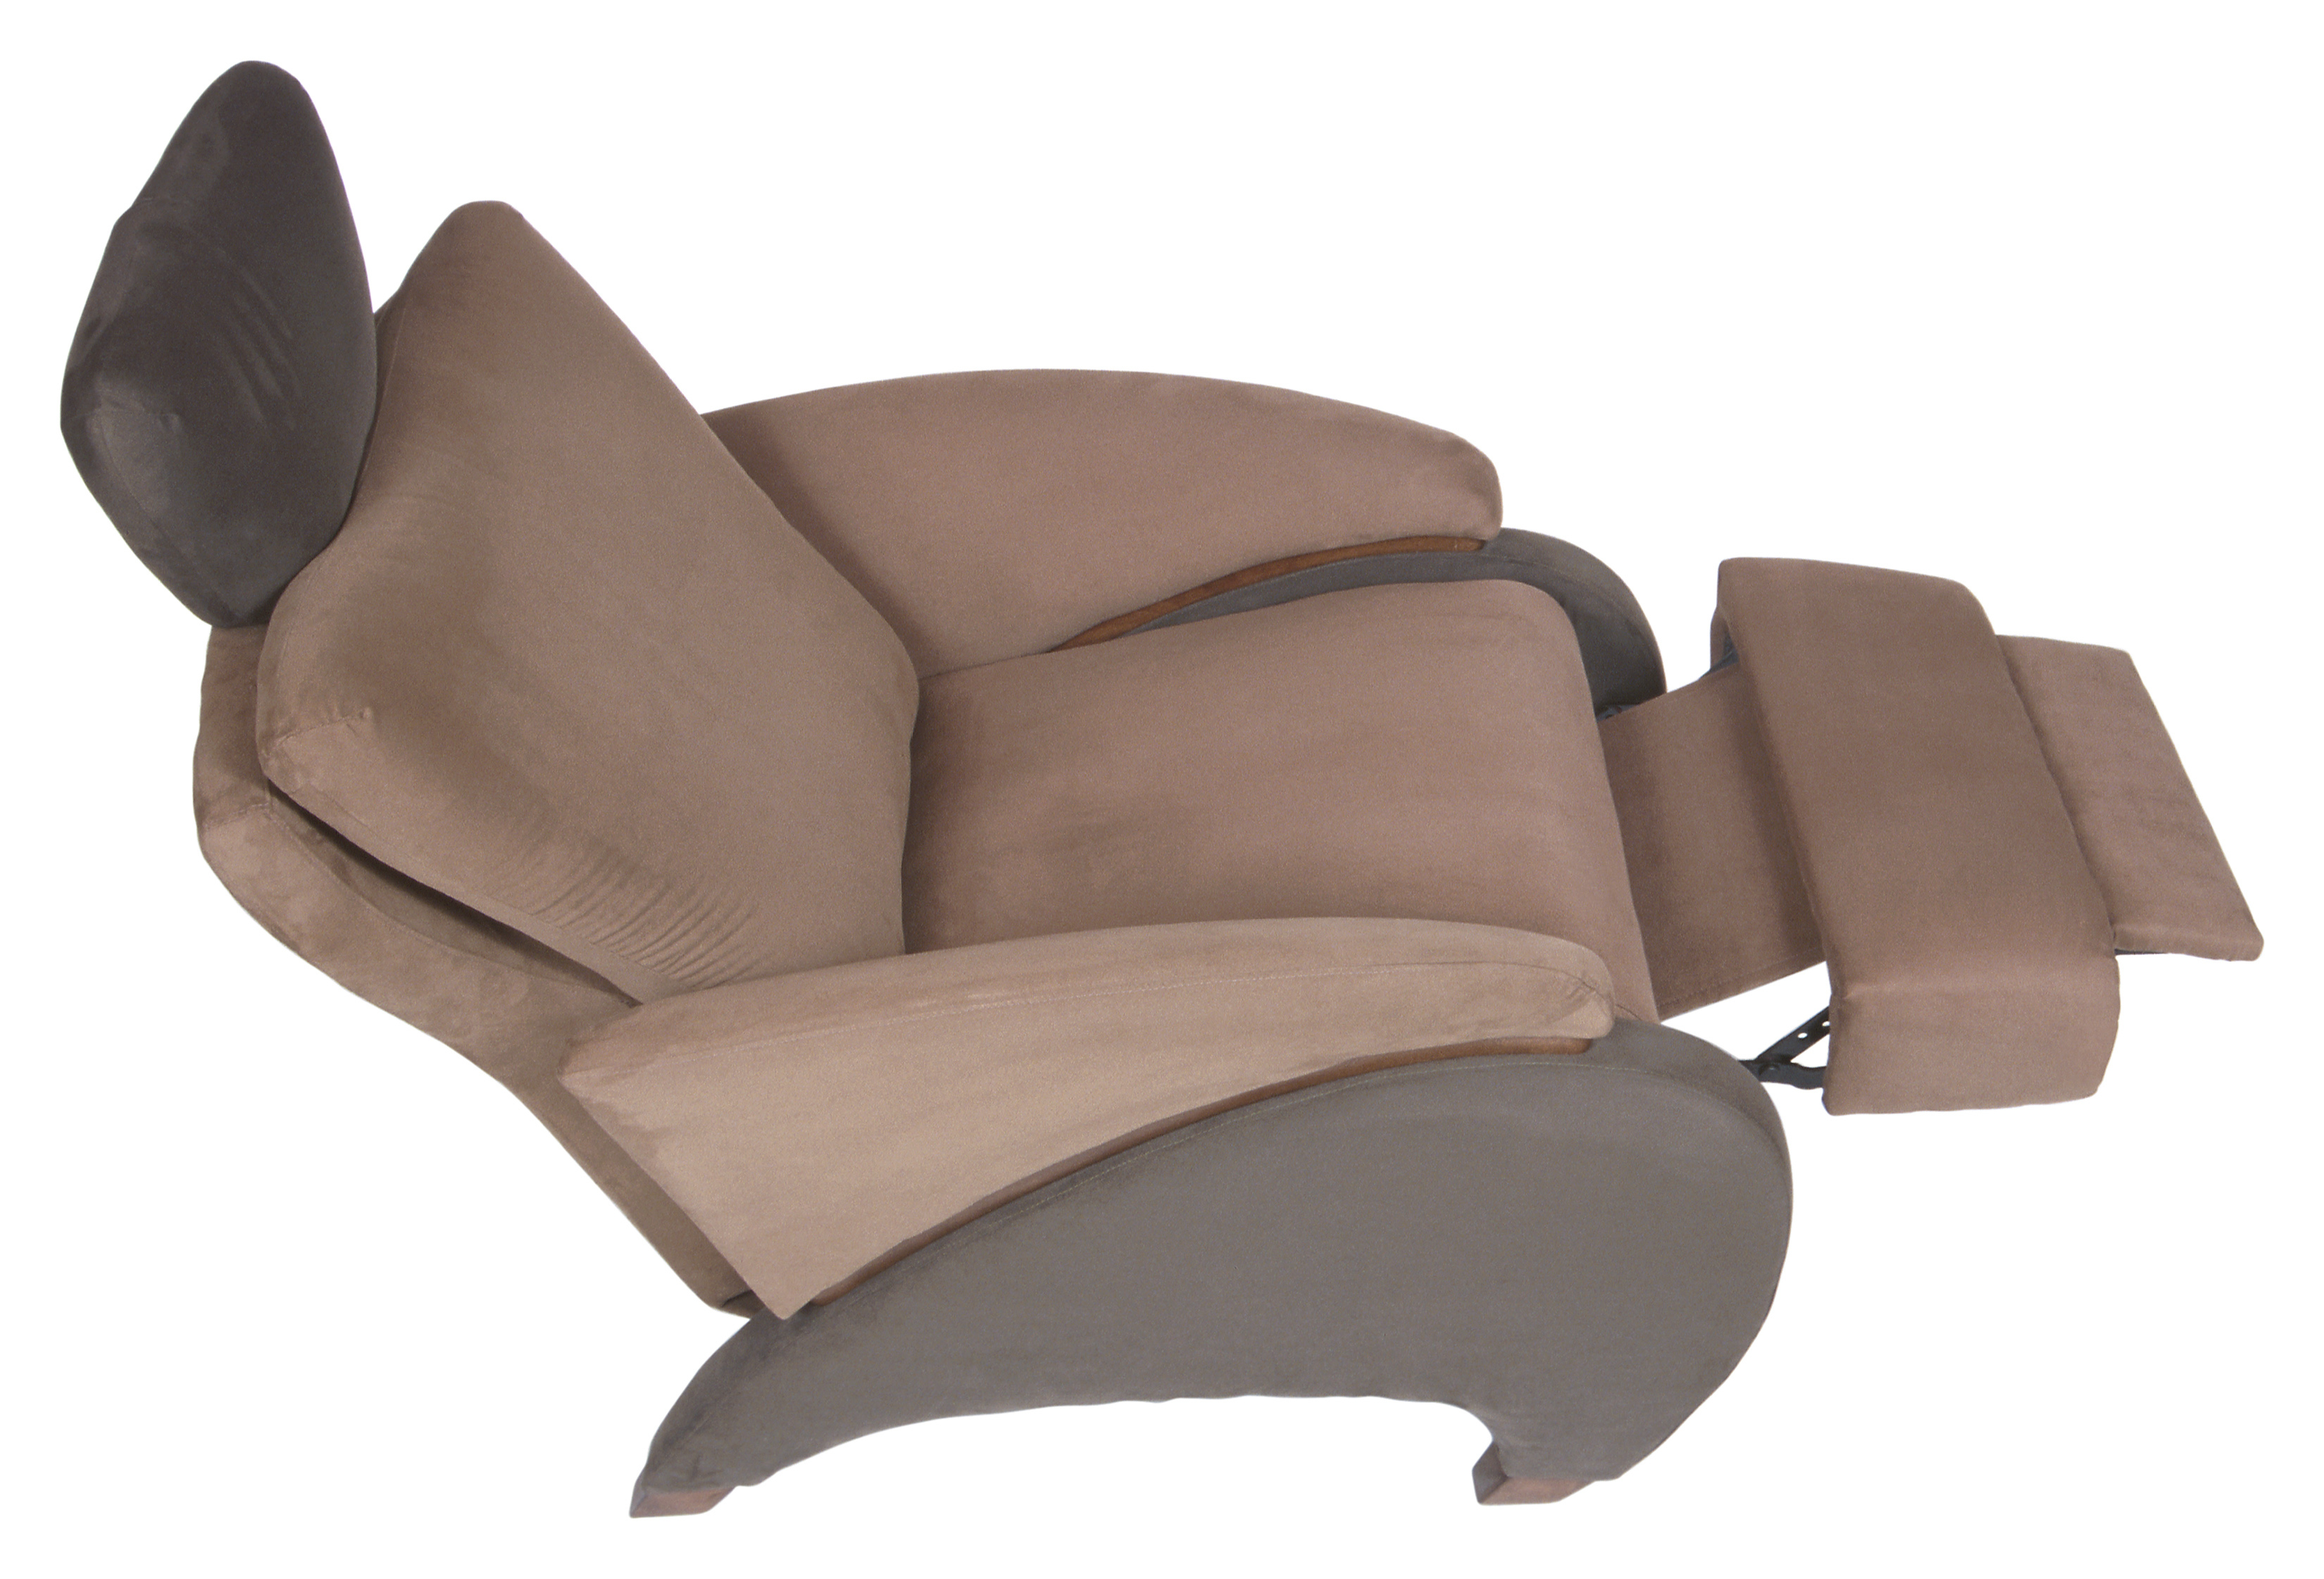 buy comforter to for chairs the small spaces best recliners in comfortable